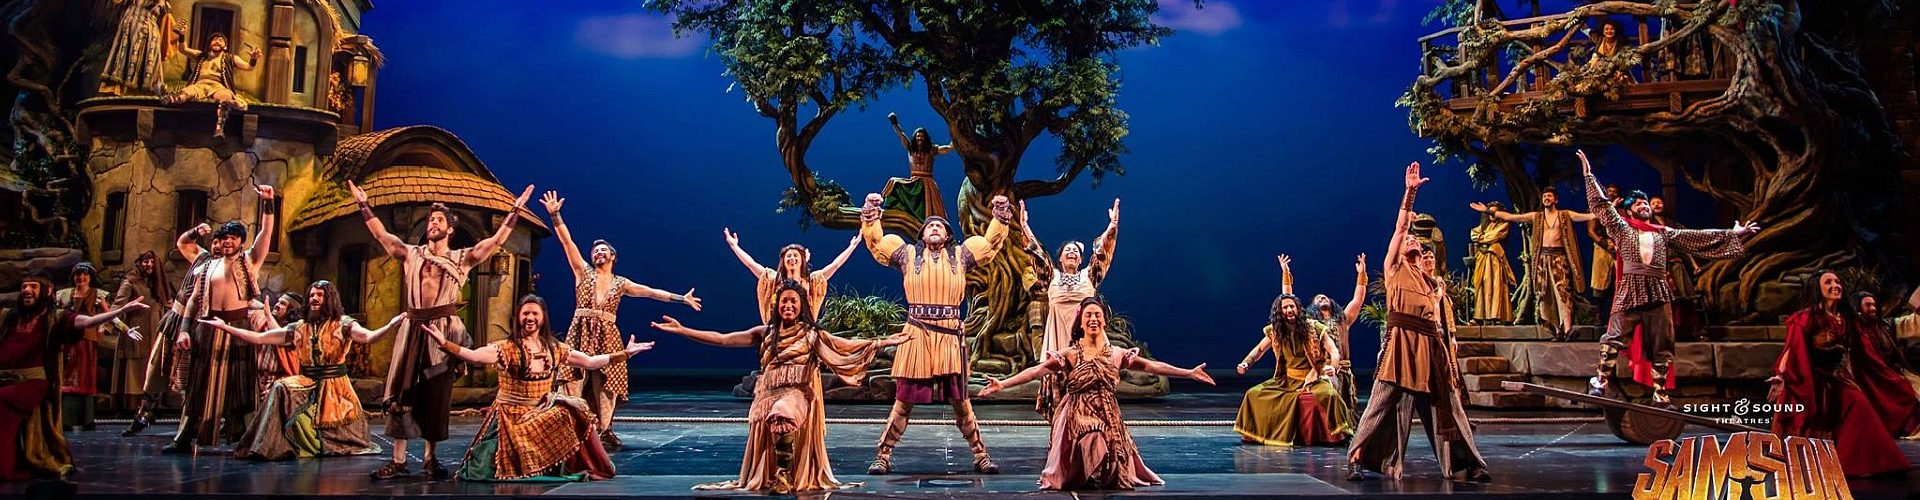 Samson & Miracle of Christmas Return to Branson's Sight & Sound Theatre in 2019